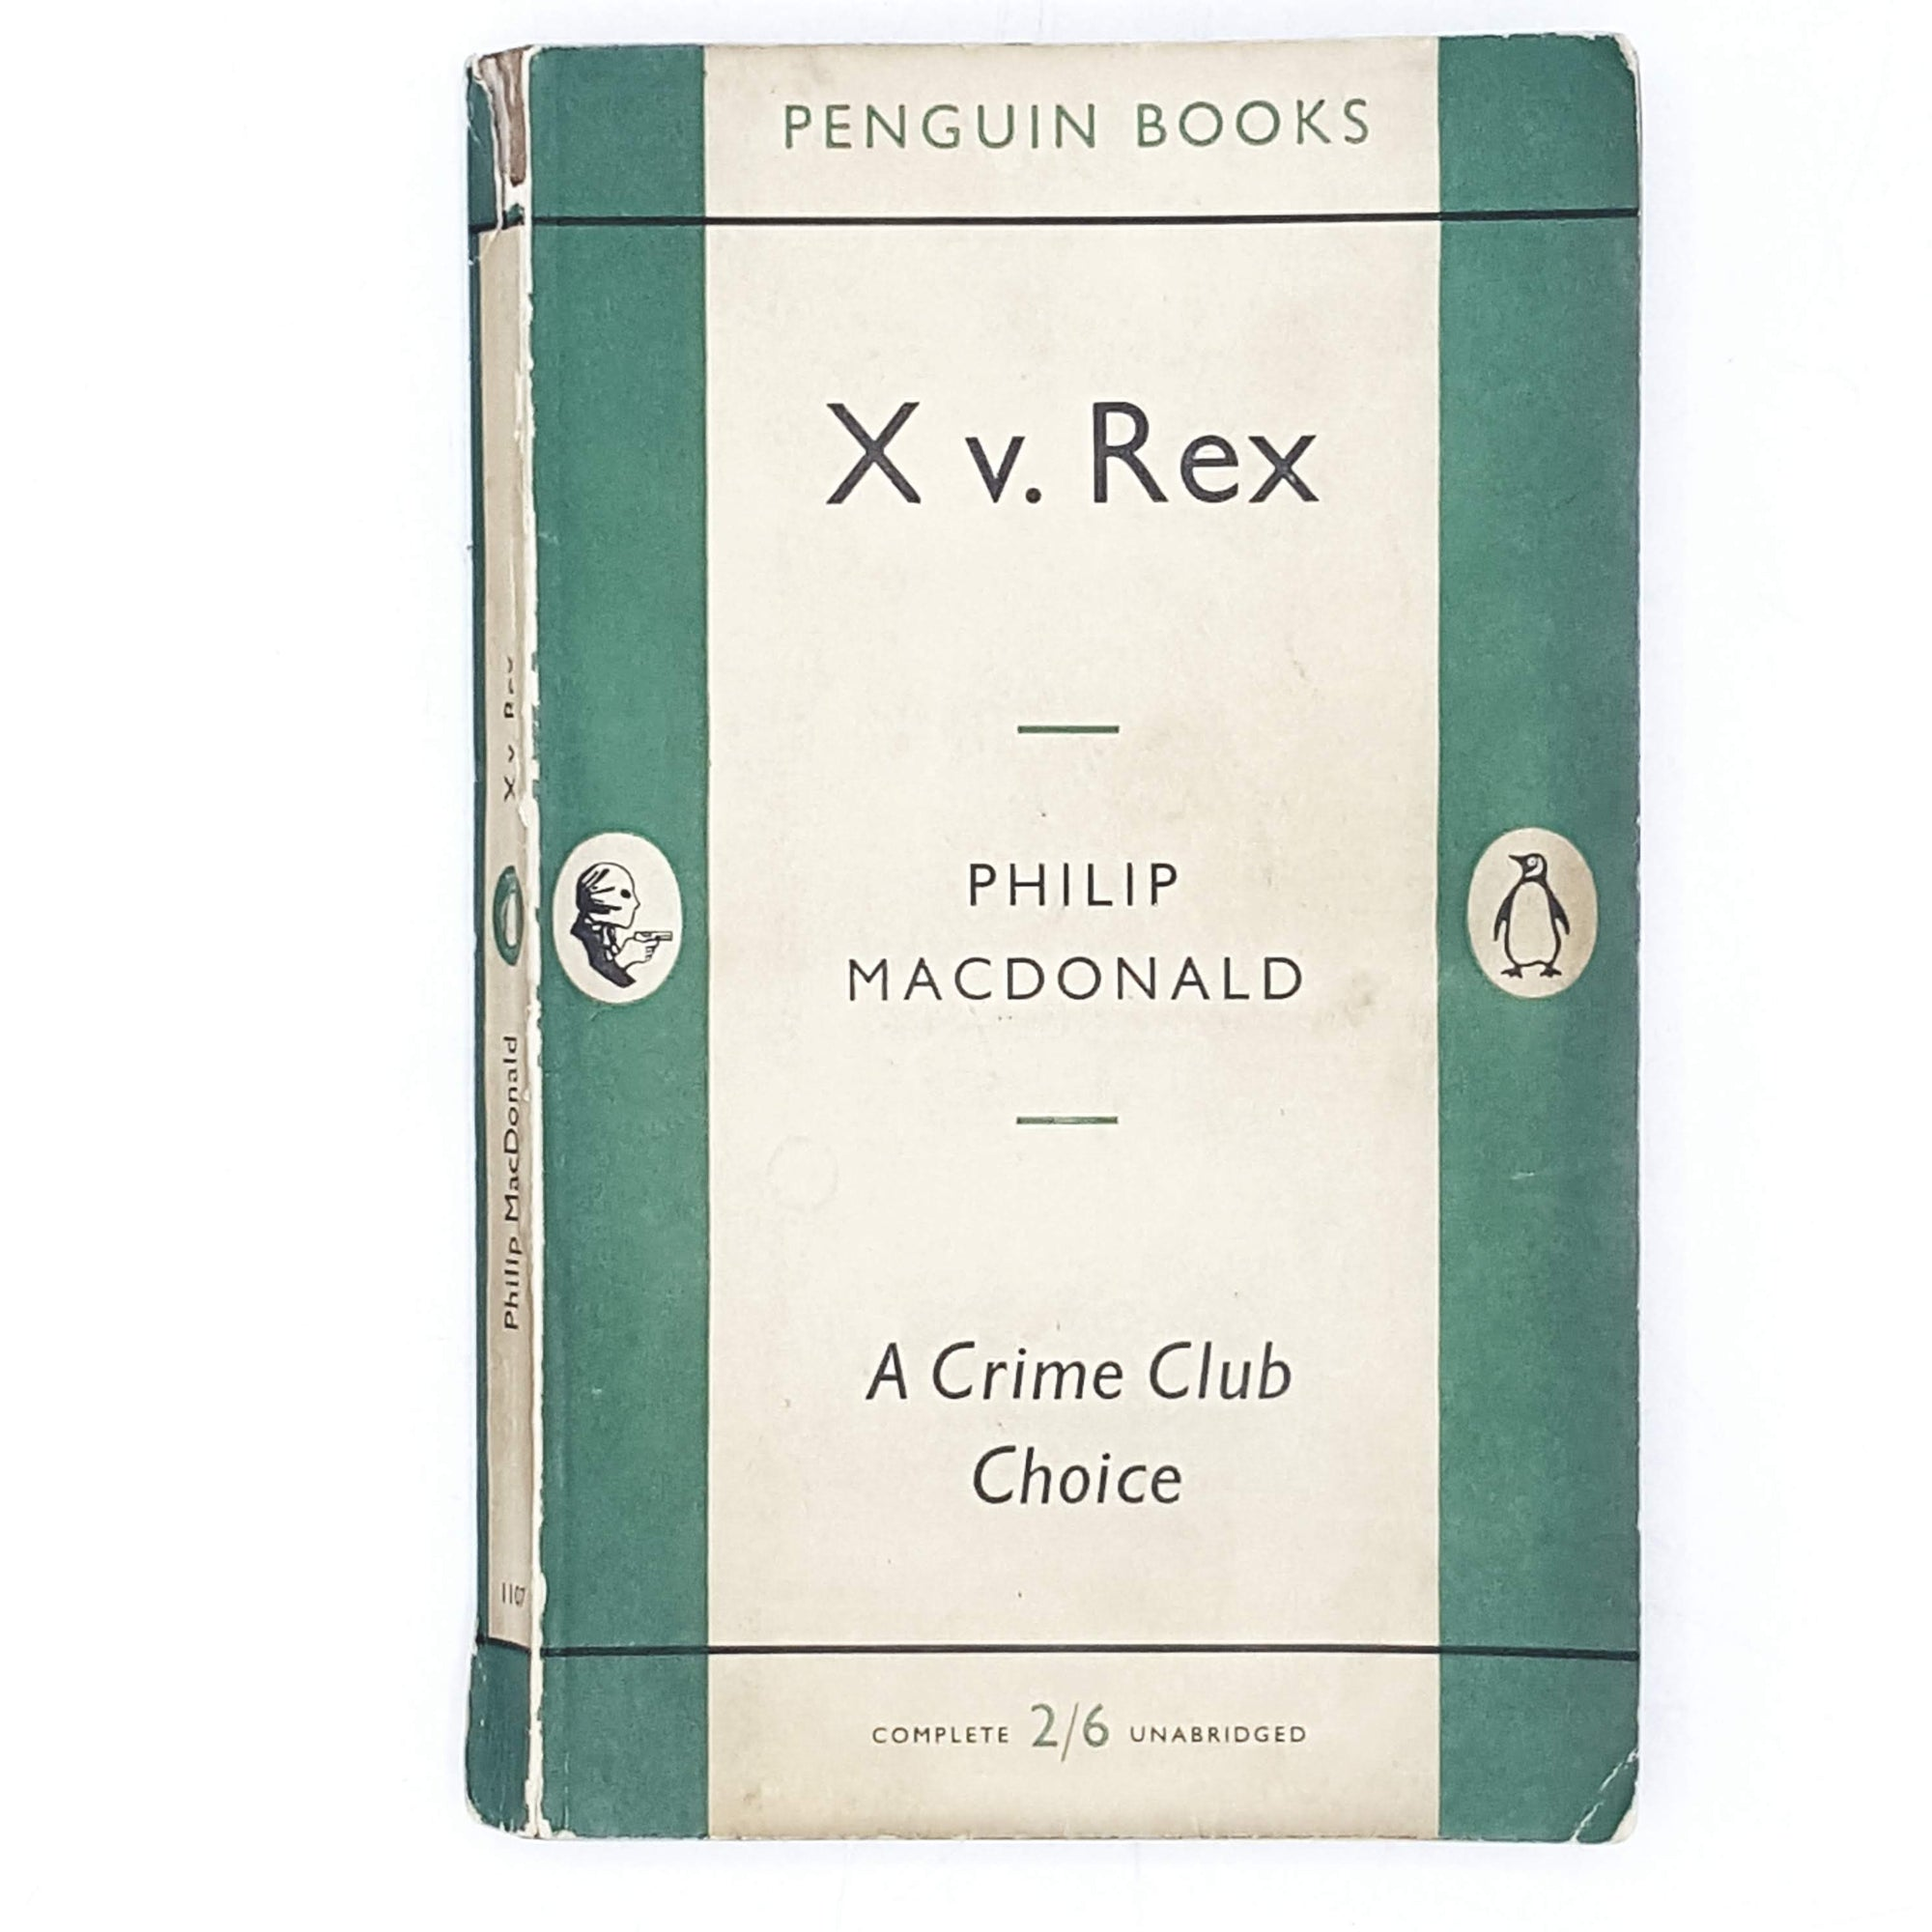 First Edition Penguin X v. Rex by Philip MacDonald 1955